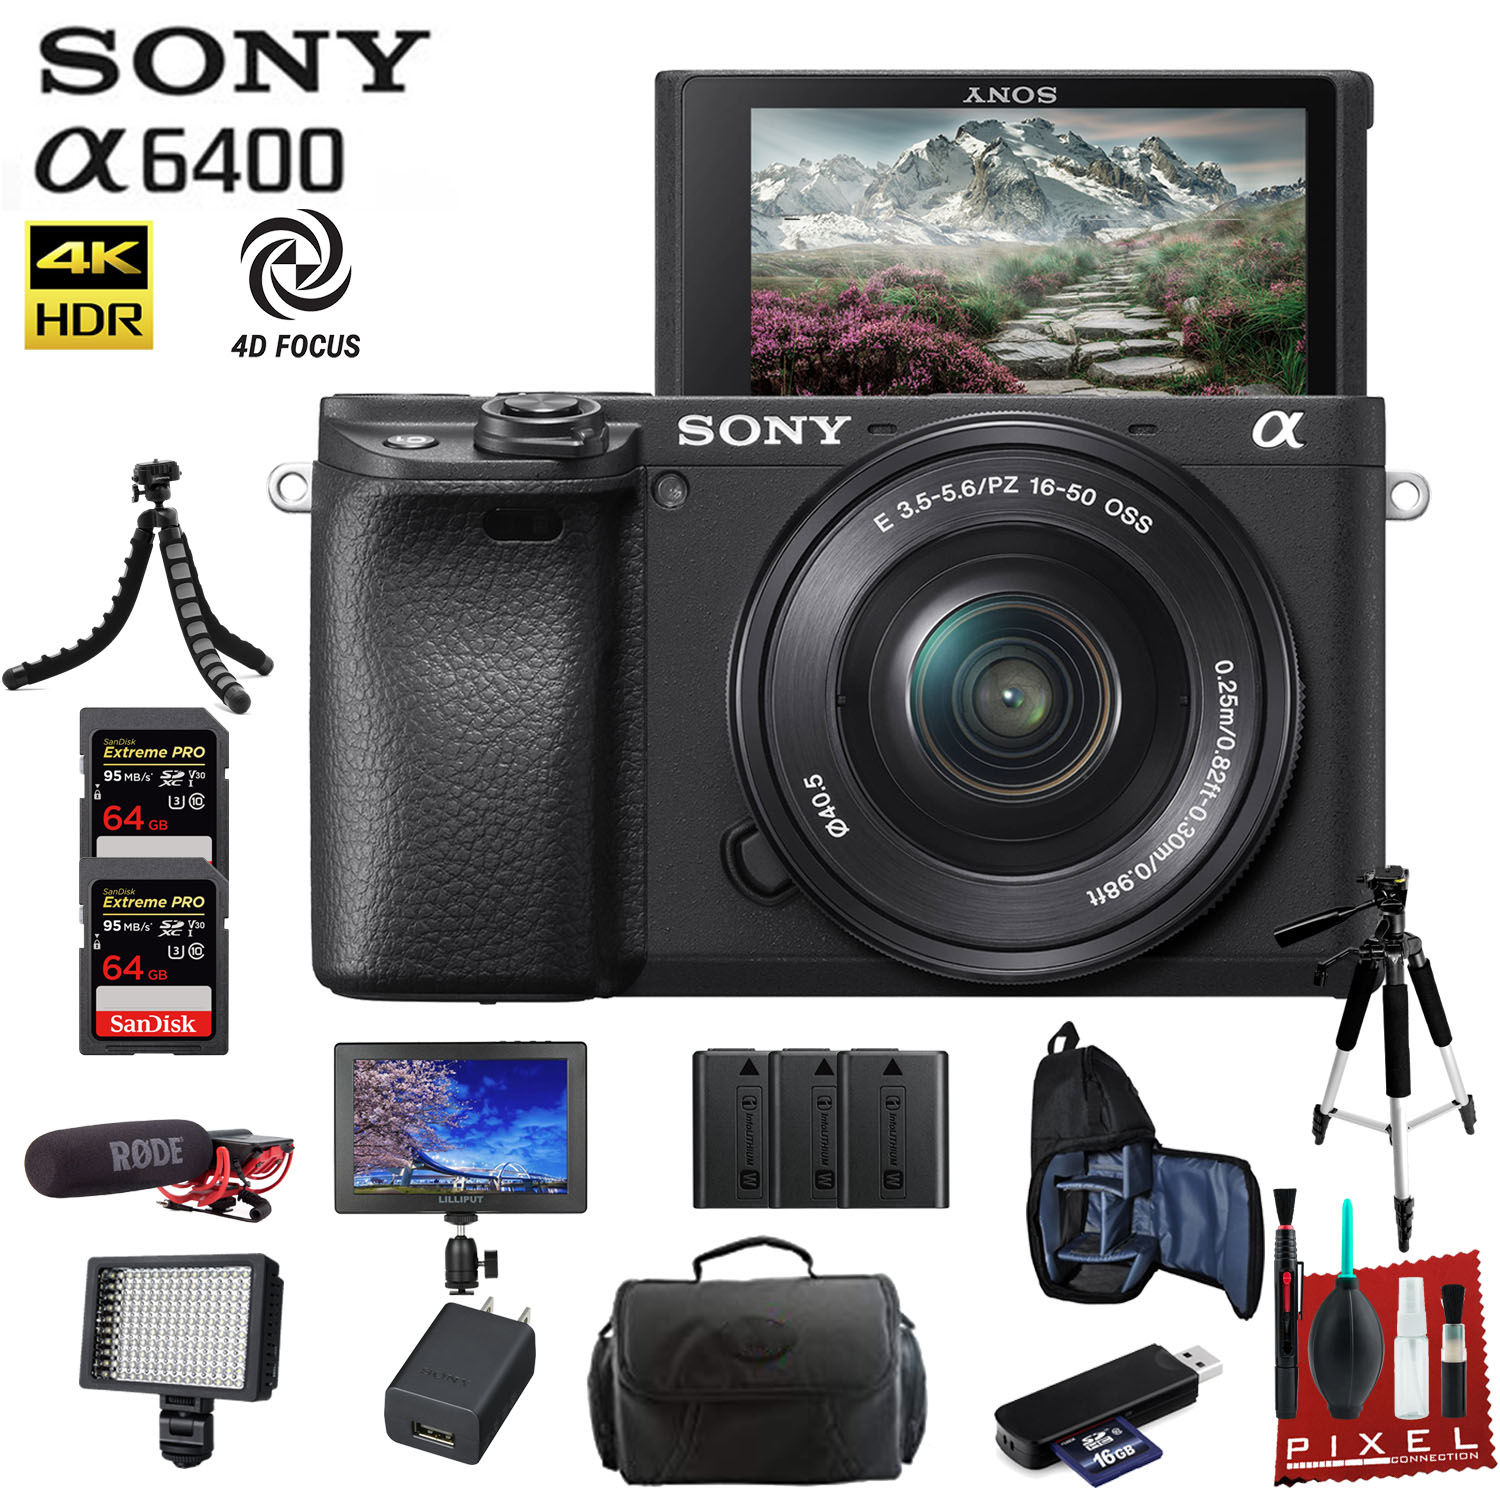 Sony Alpha a6400 Mirrorless Digital Camera with 16-50mm Lens With Bag, Tripod, 2x Extra Batteries, Rode Mic, LED Light, 4K Monitor, 2x 64GB Memory Card, Sling Bag, and More.